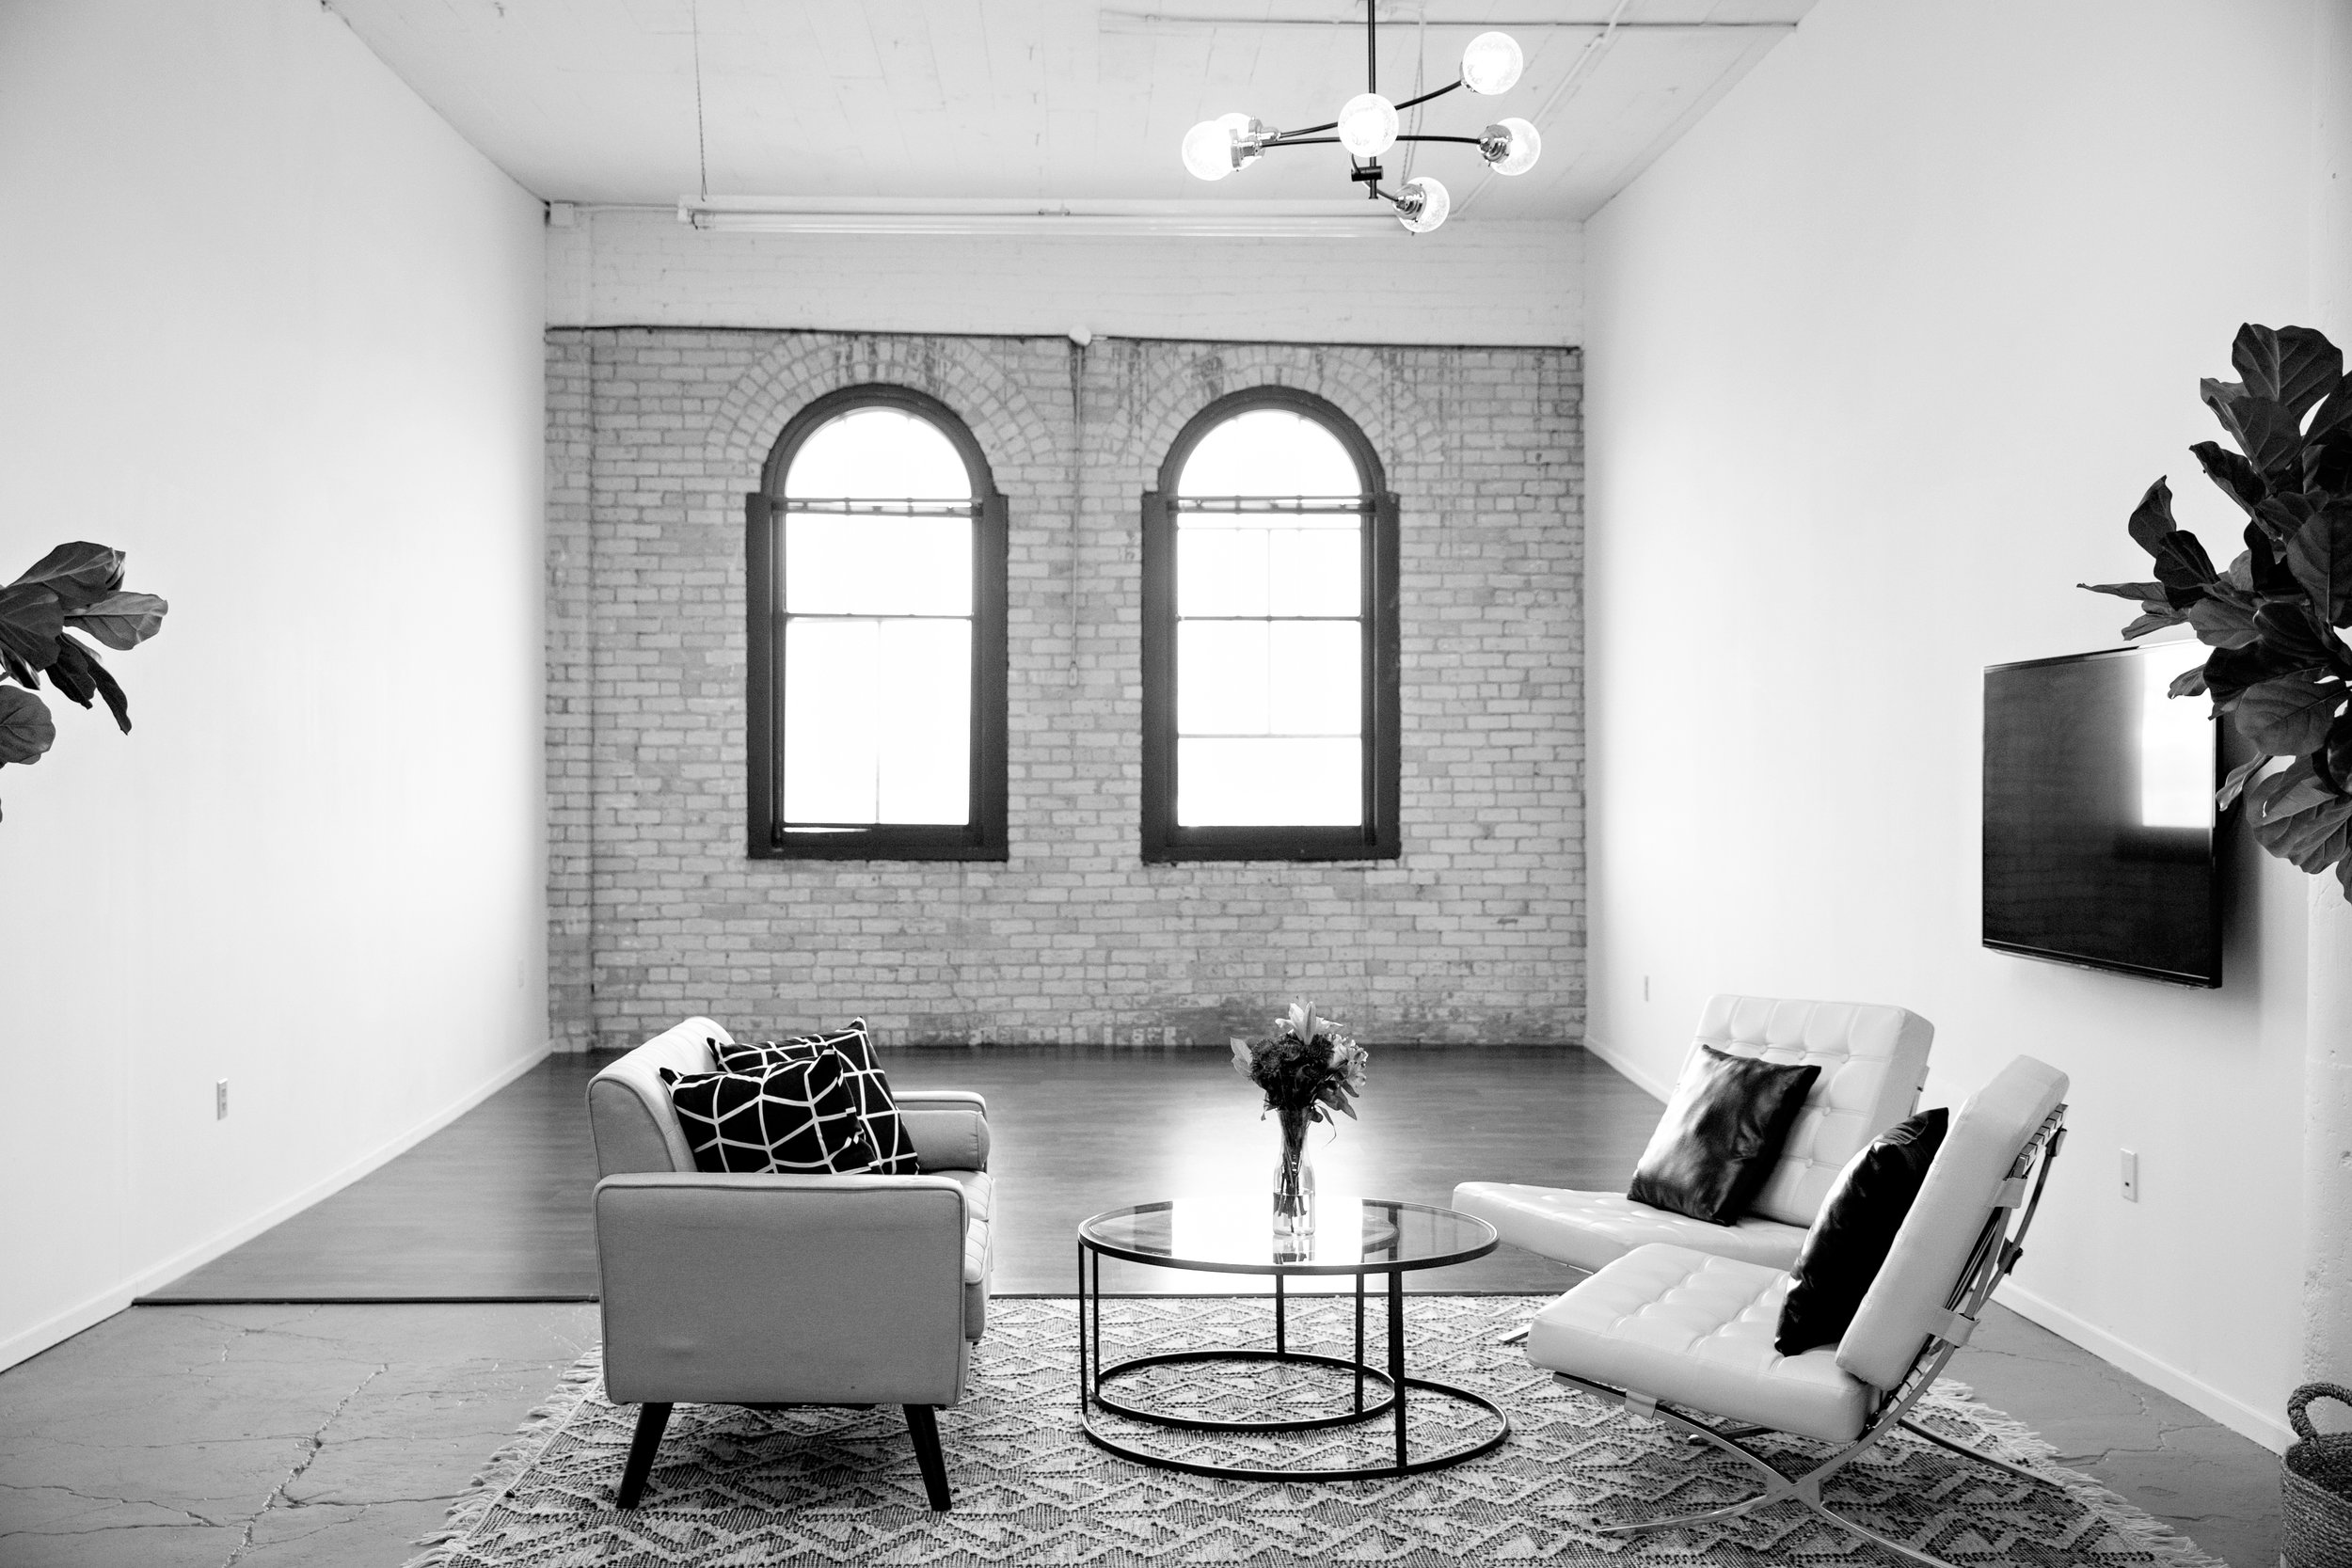 NE Minneapolis photography studio with large white walls and beautiful natural light available for hourly rental